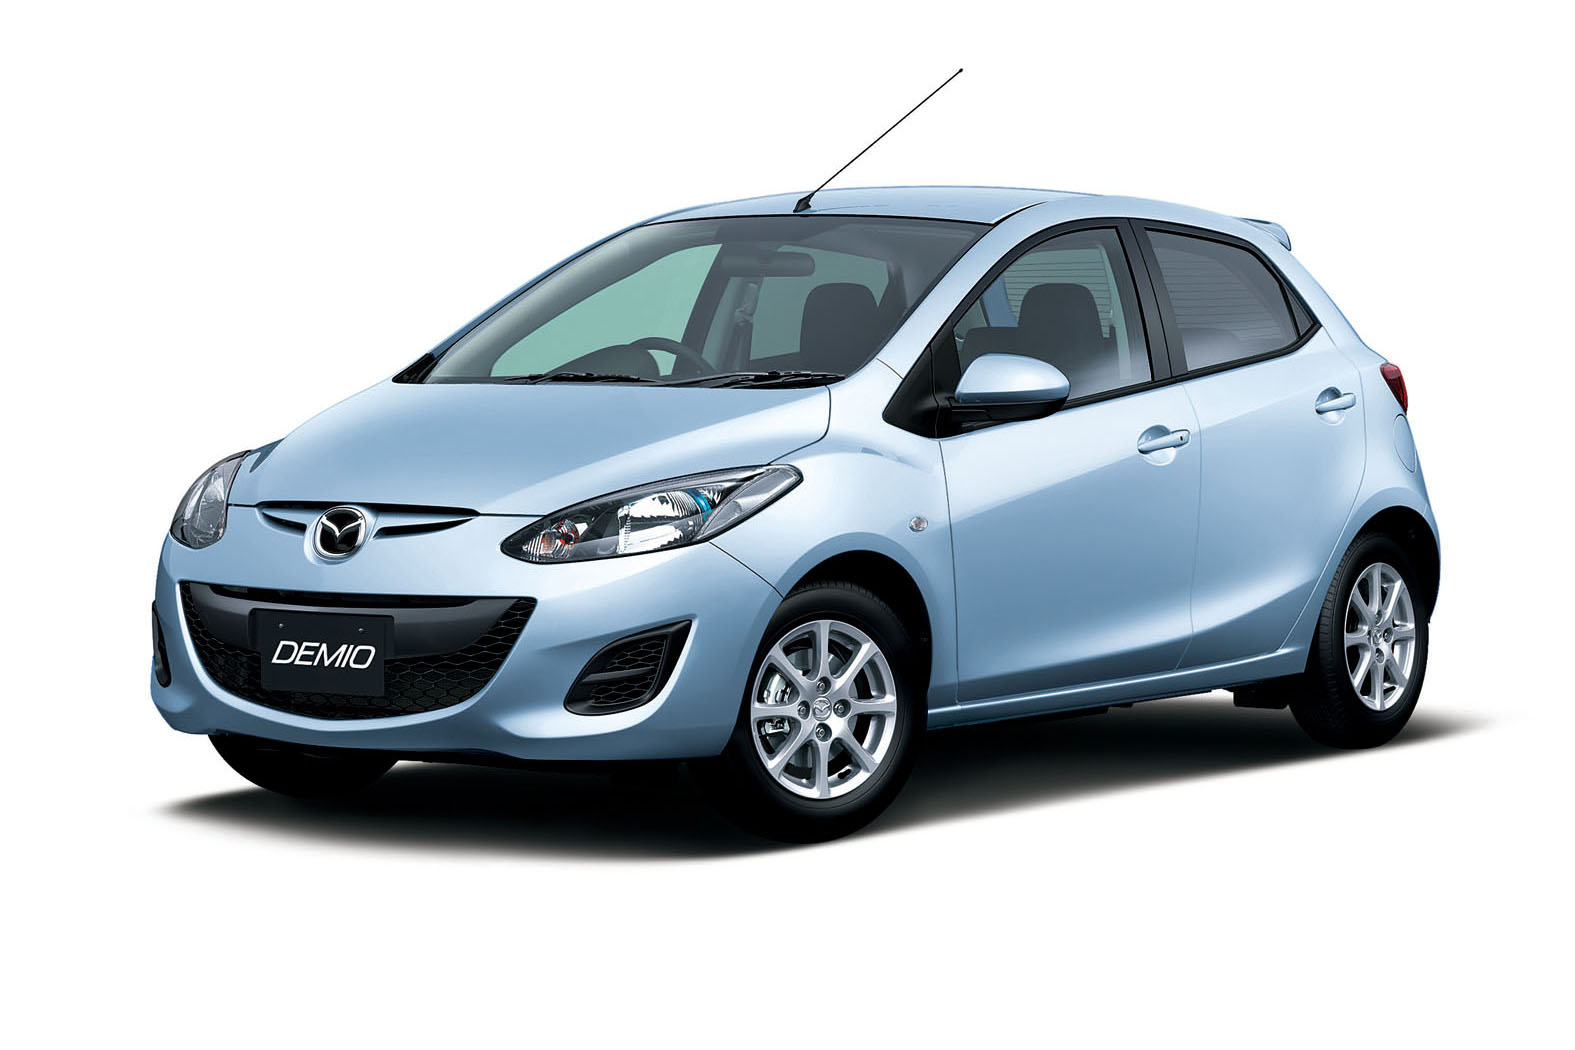 Mazda Demio 13-SKYACTIV Smart Stylish